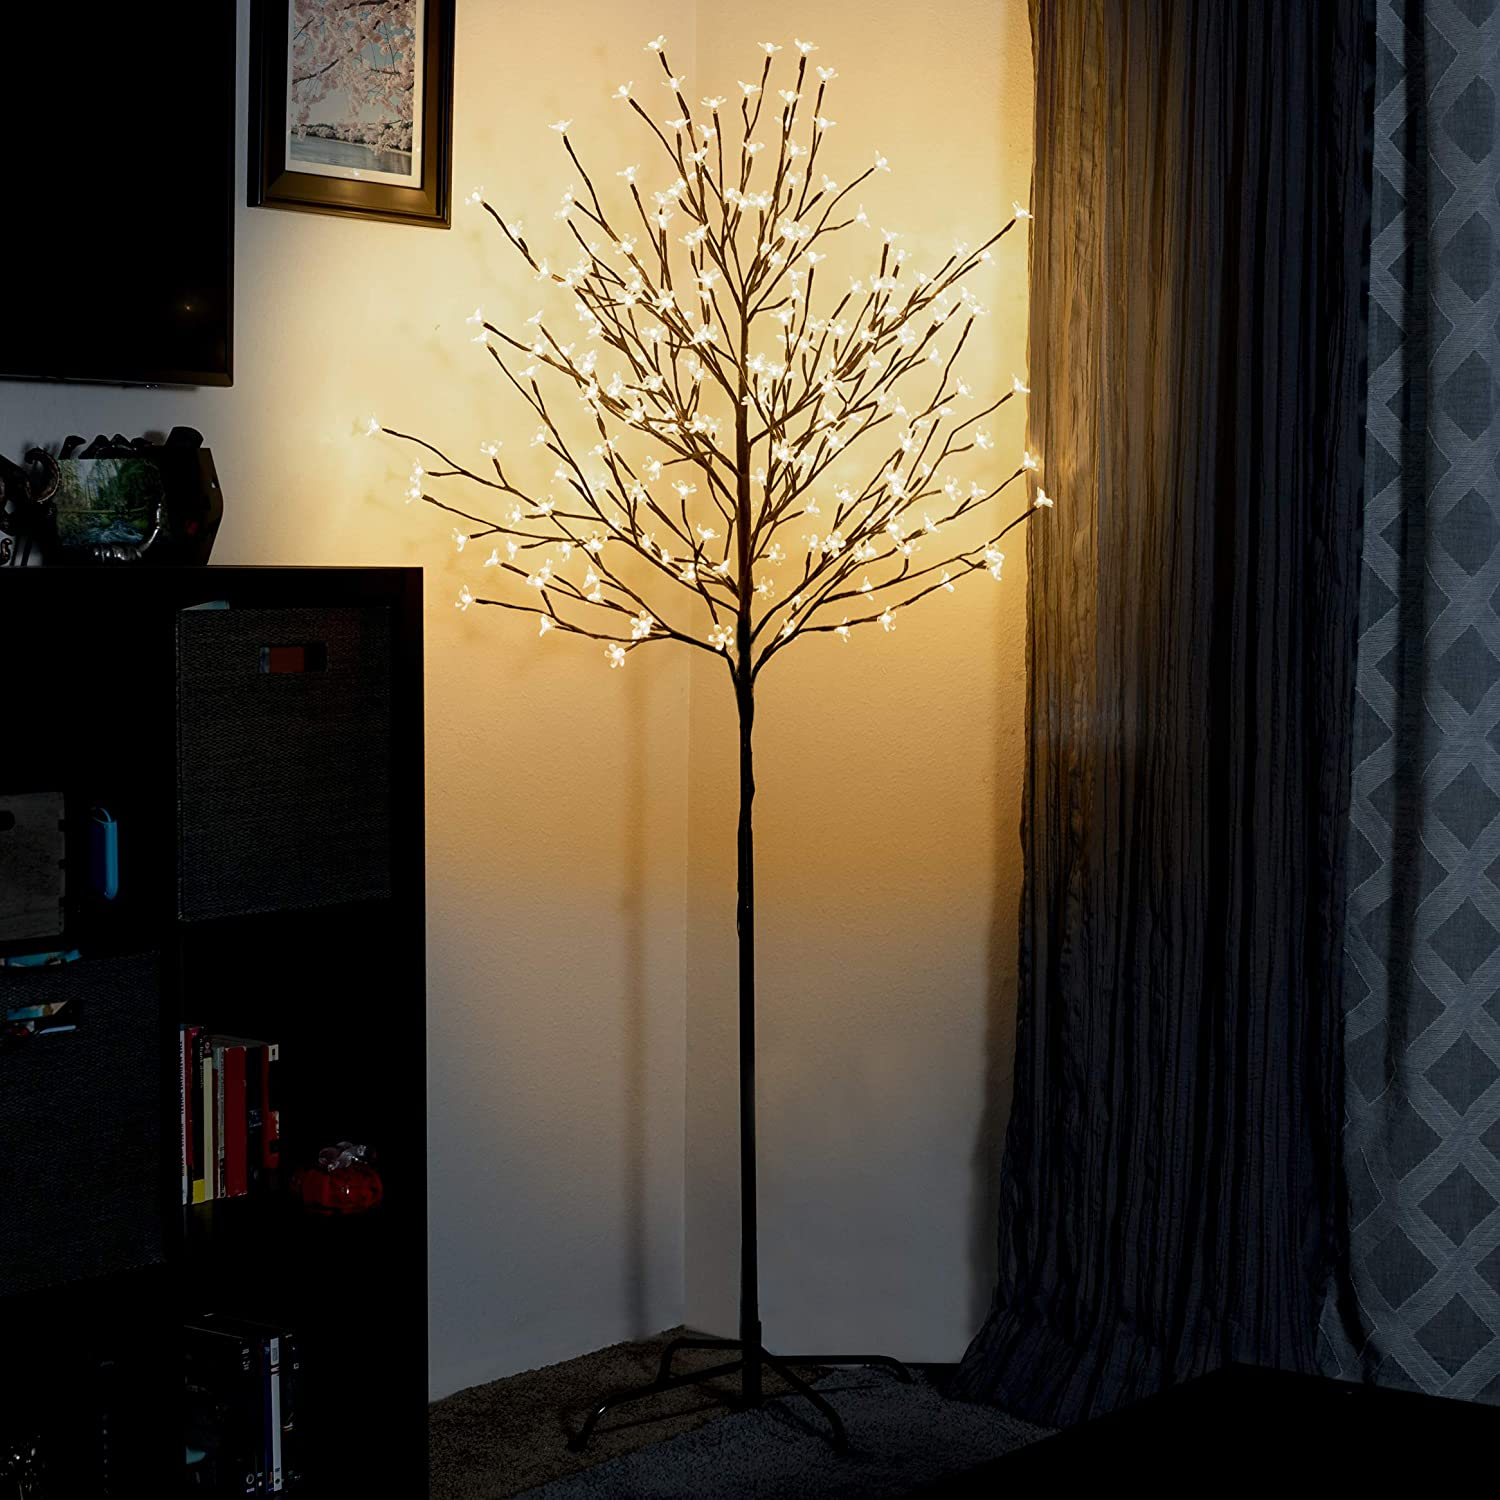 Asani Cherry Blossom Tree Light for Holiday and Home Decor, 6-Foot Artificial Lighted Tree with 208 Warm White LEDs, Lighting Decorations for Christmas, Wedding, Living Room, Bedroom, Indoor, Outdoor